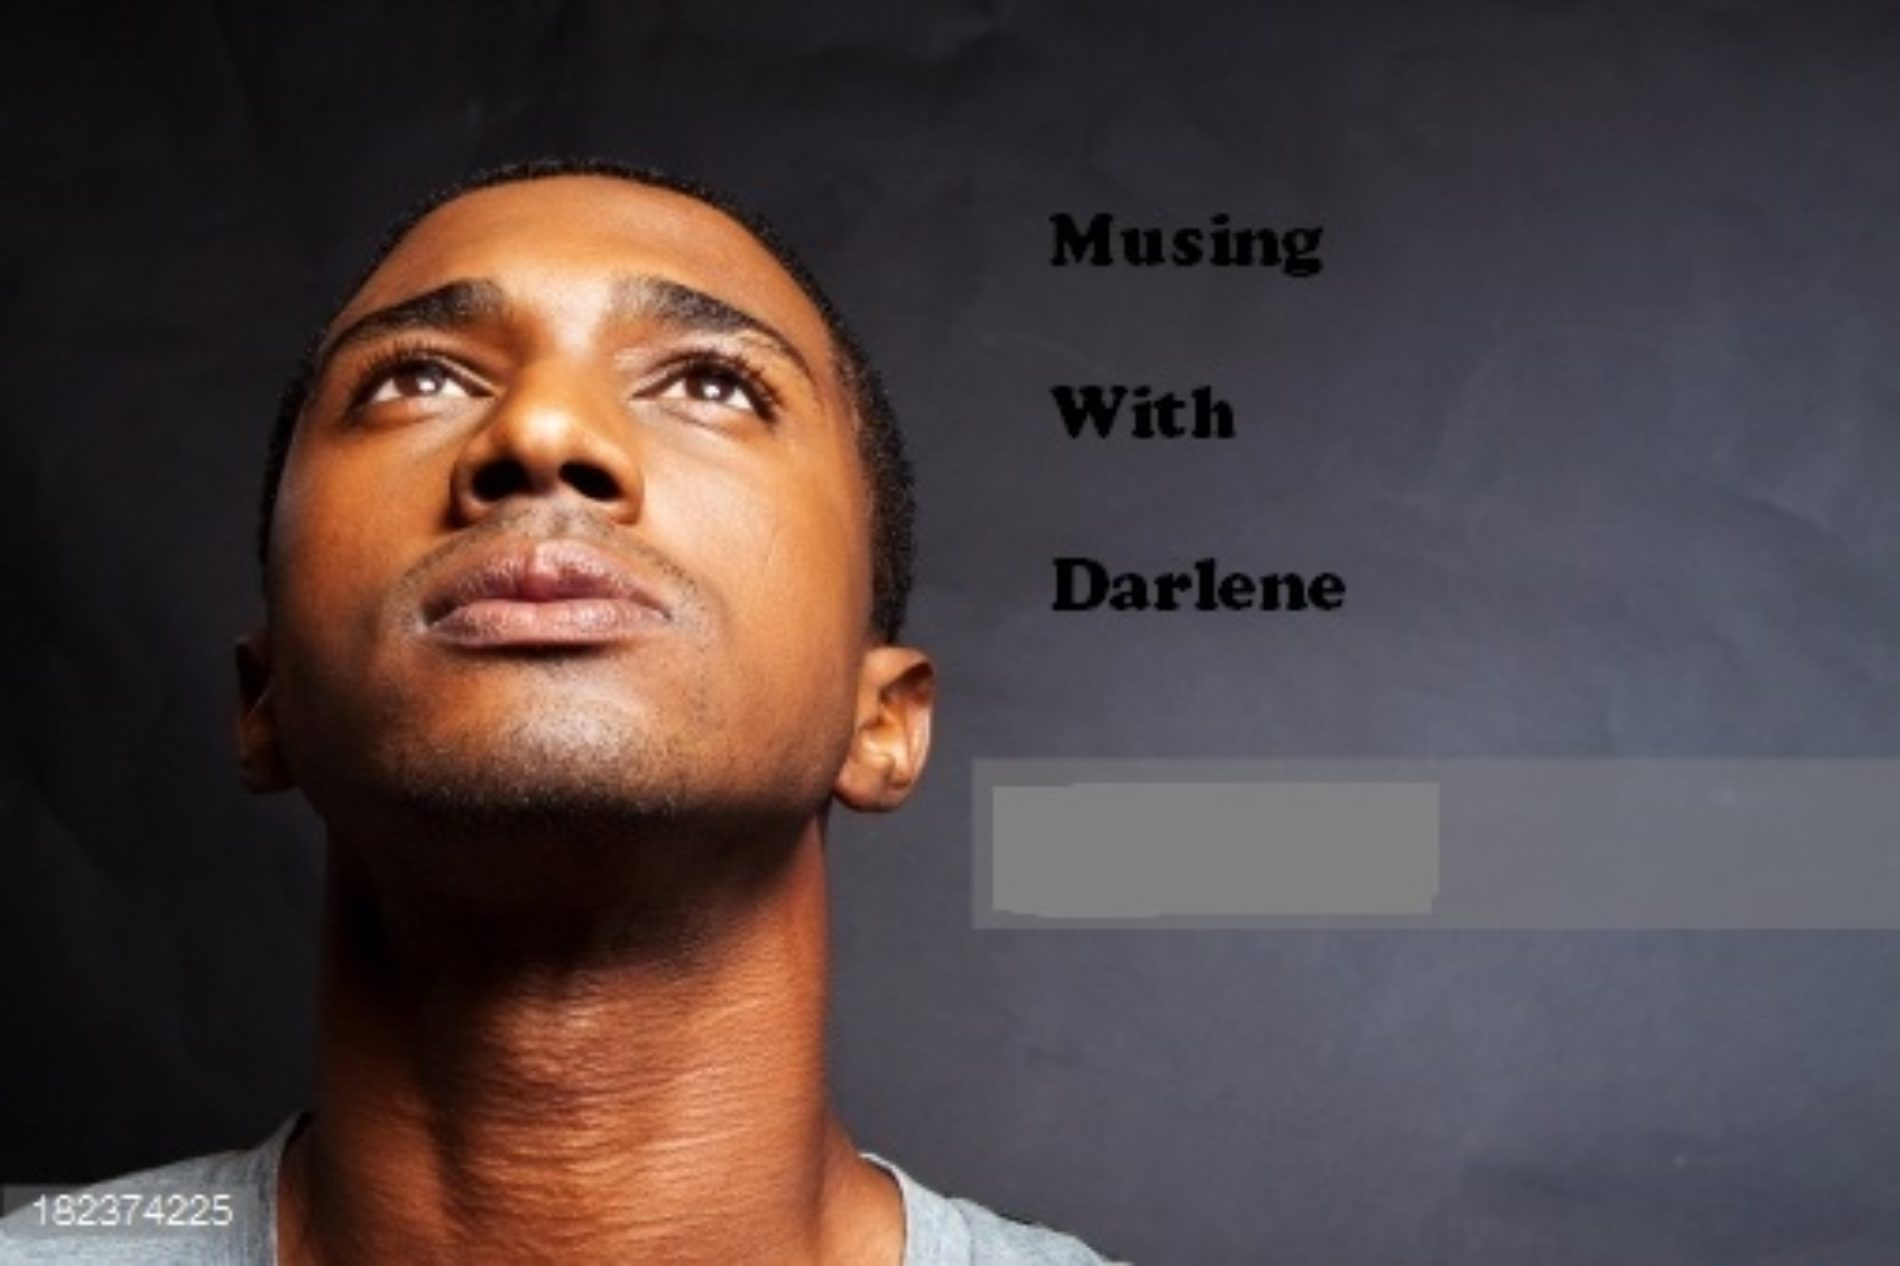 MUSING WITH DARLENE: JEALOUSY